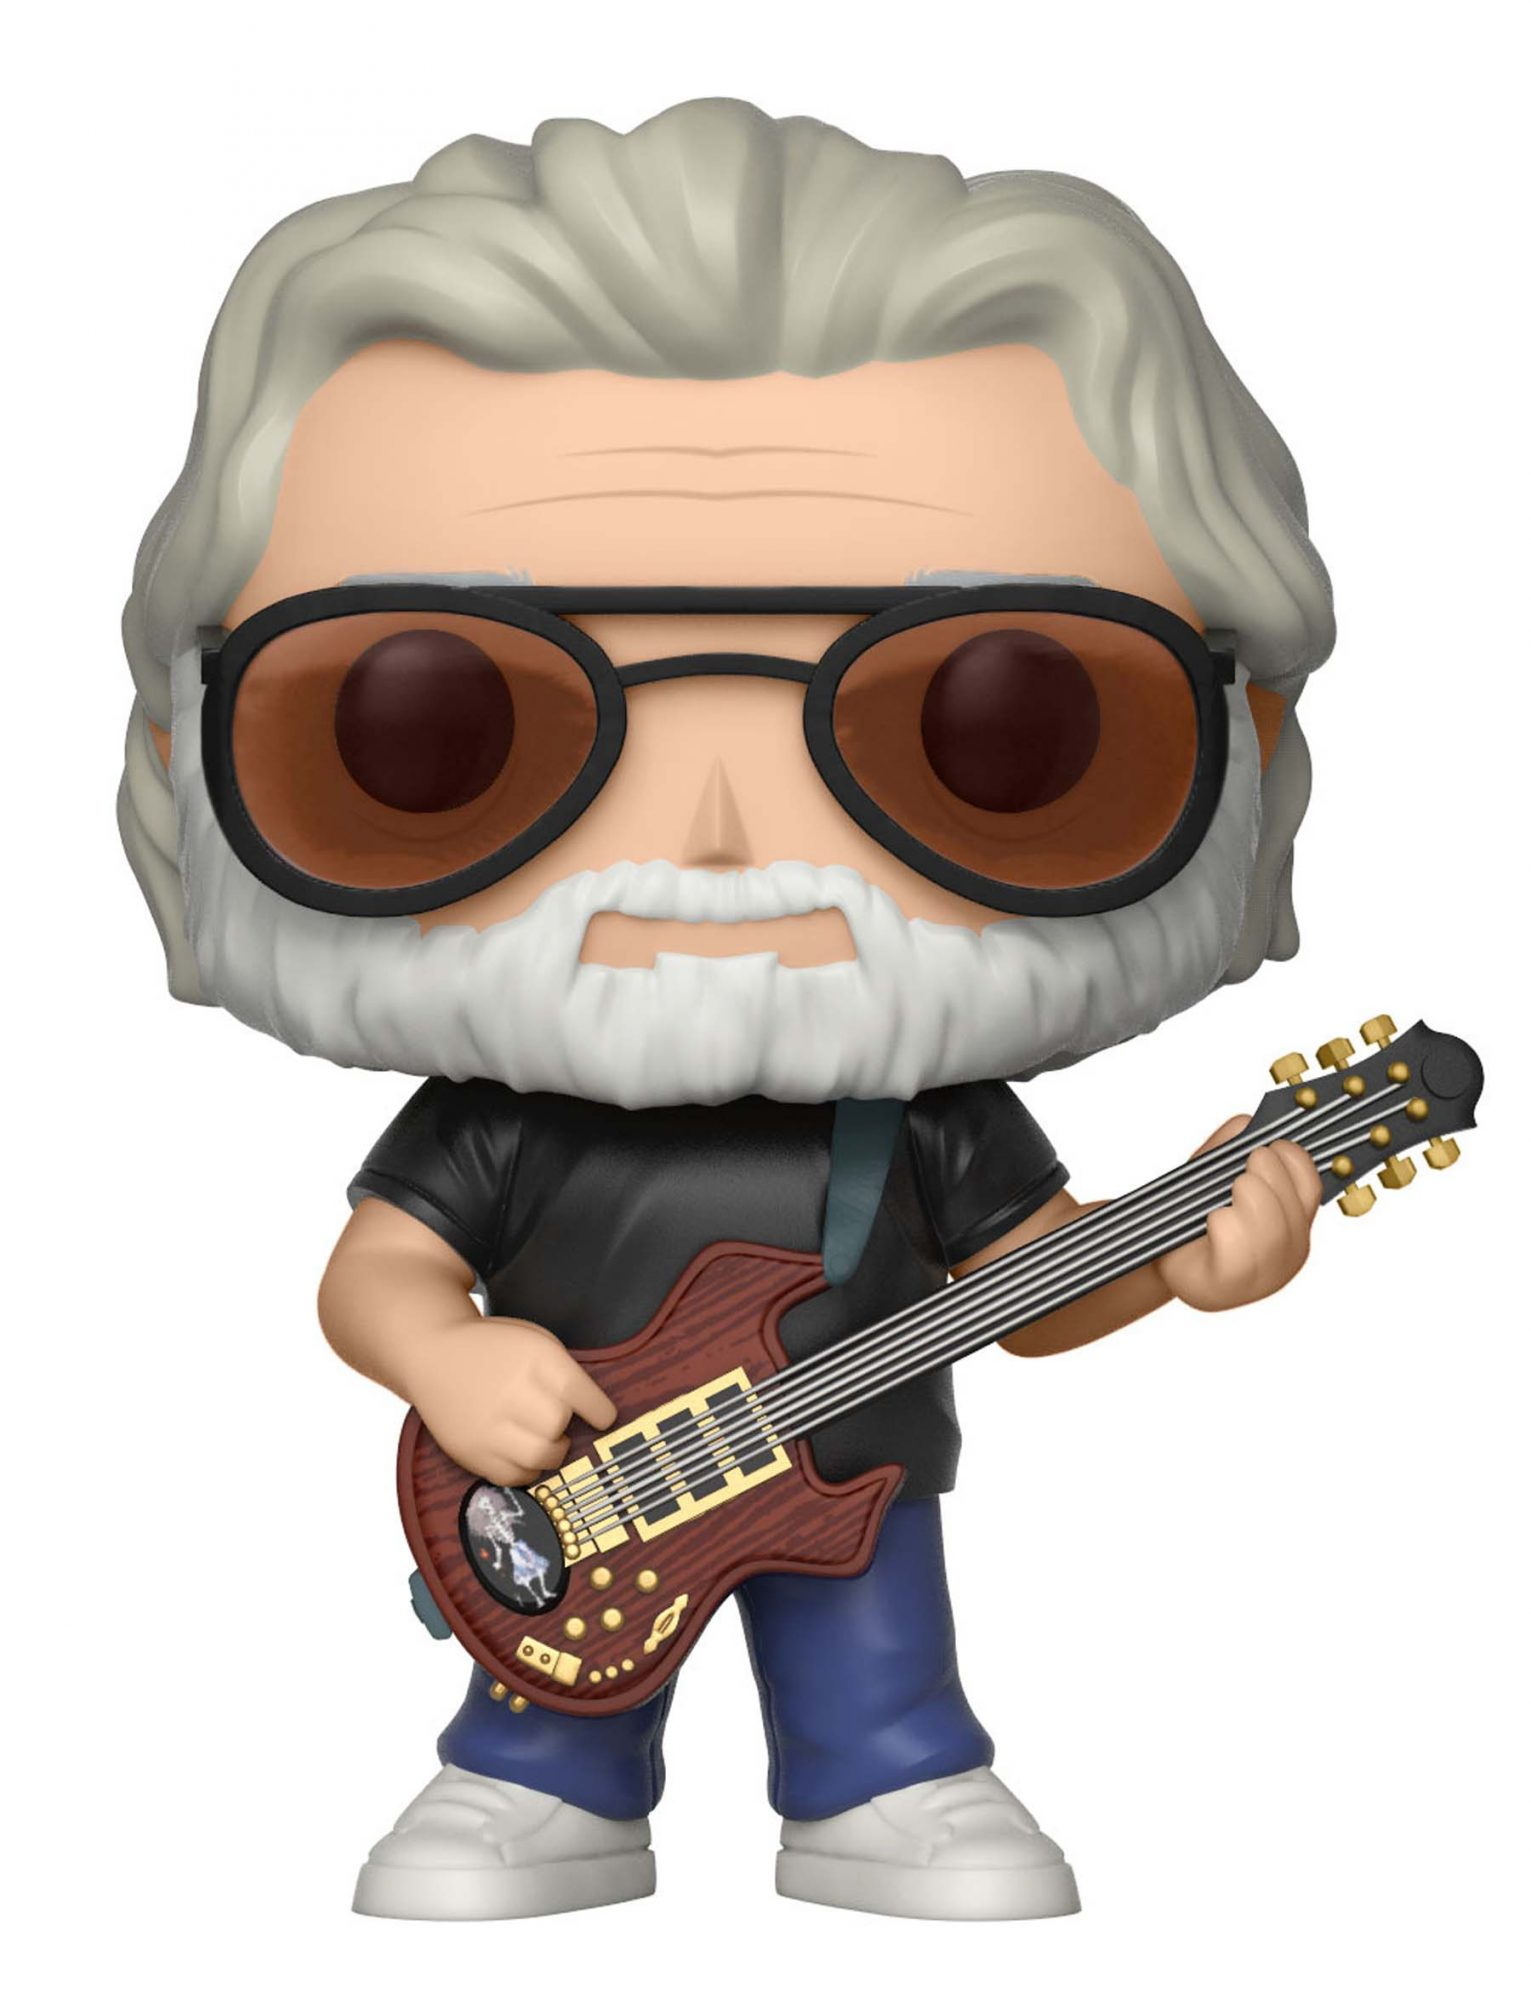 24528_Music_JerryGarcia_POP_RENDERS